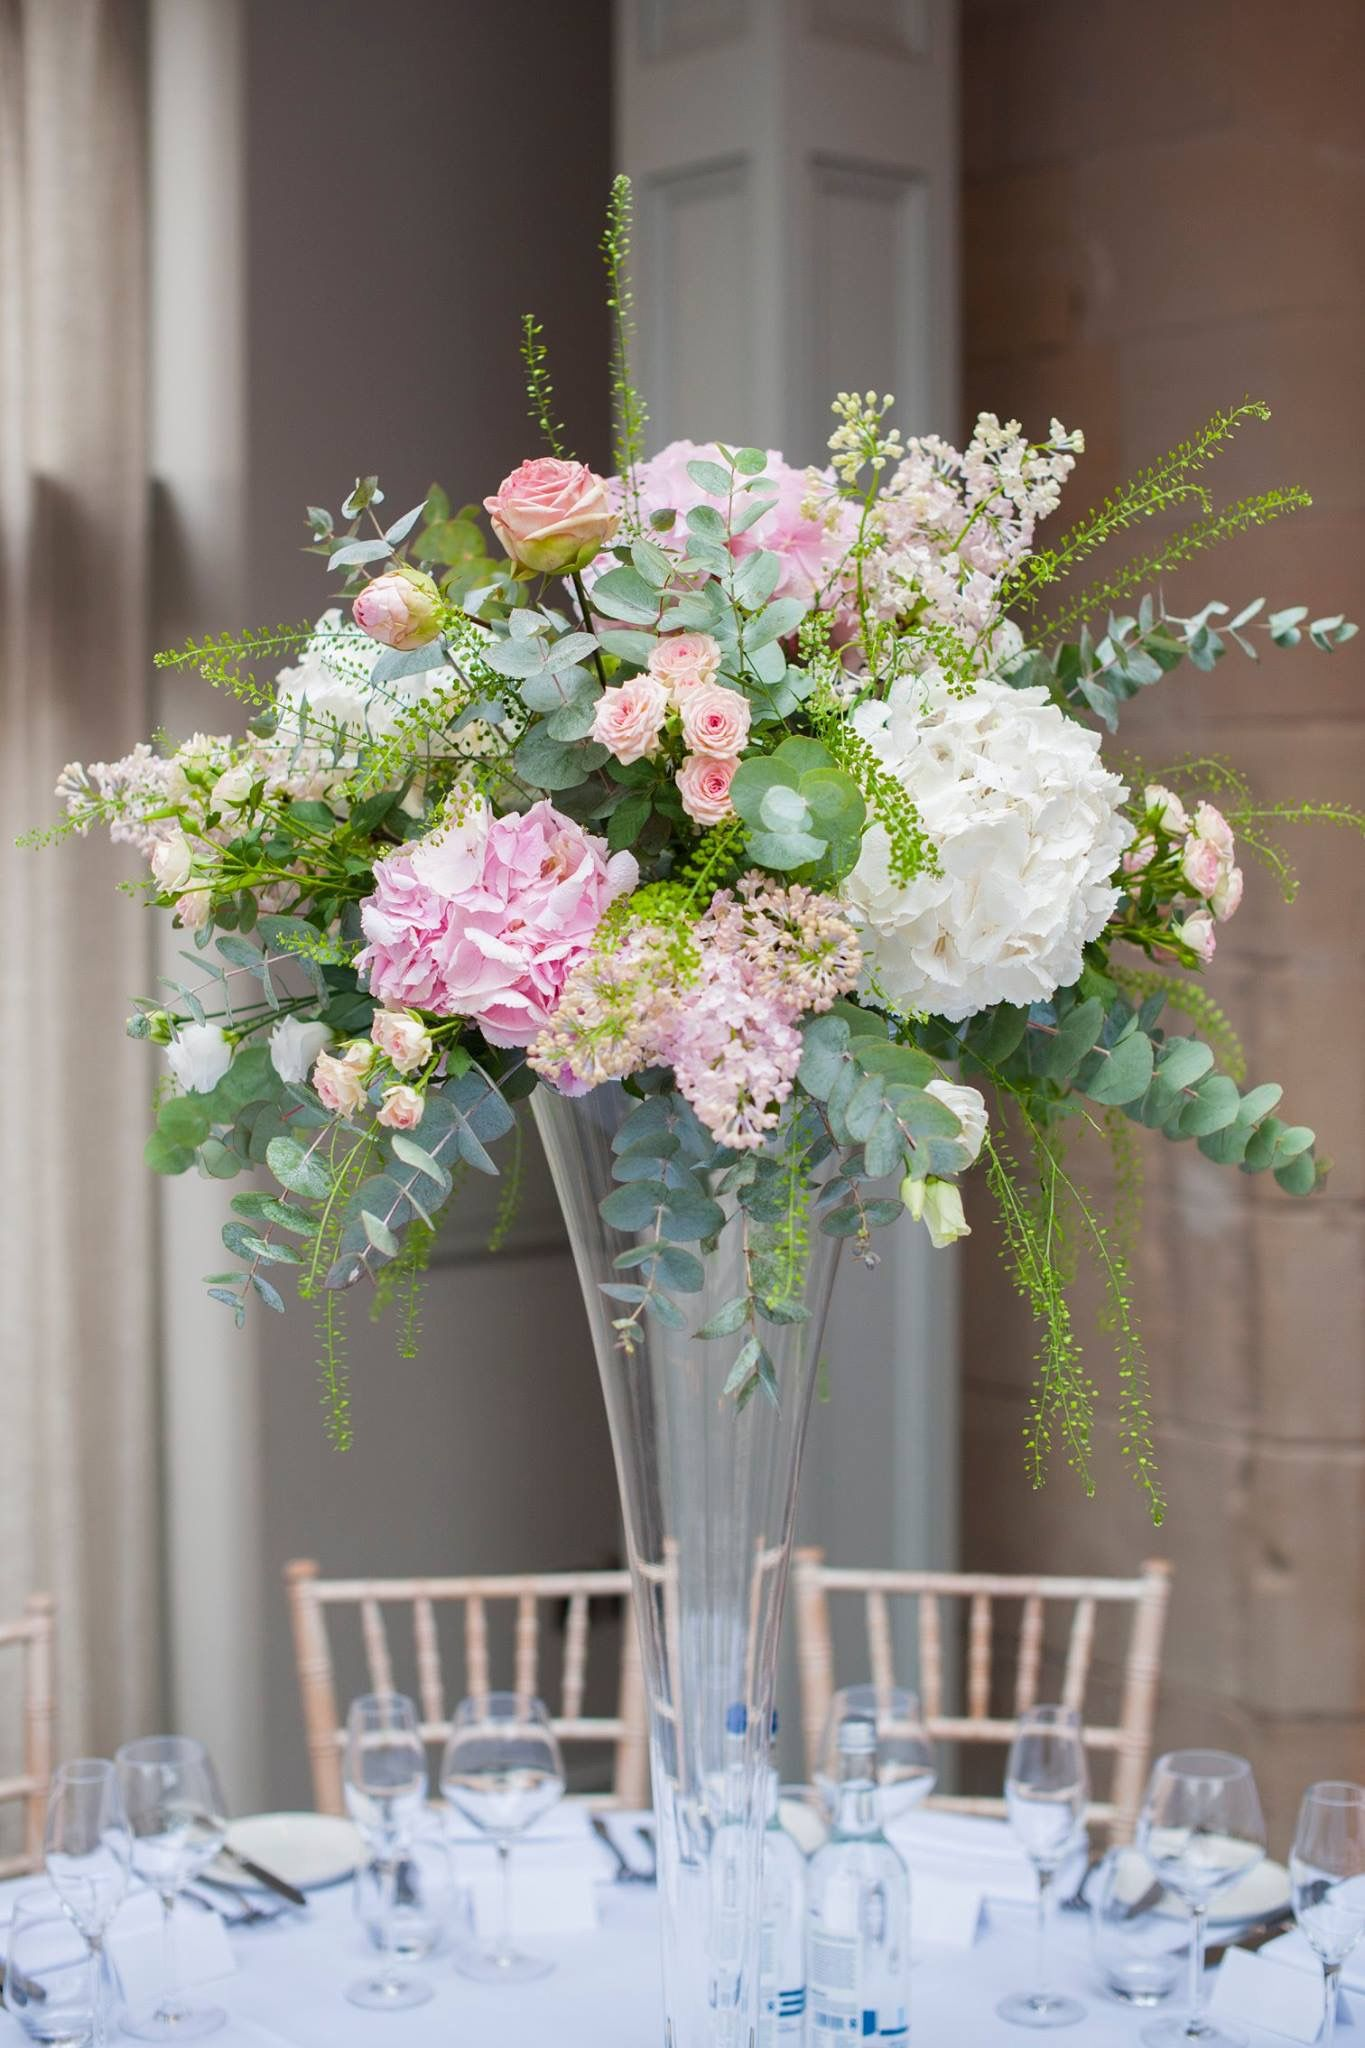 Tall White And Pink Hydrangea Centrepiece Photographed By Source Images Pink Hydrangea Centerpieces White Hydrangea Centerpieces Pink Flower Arrangements